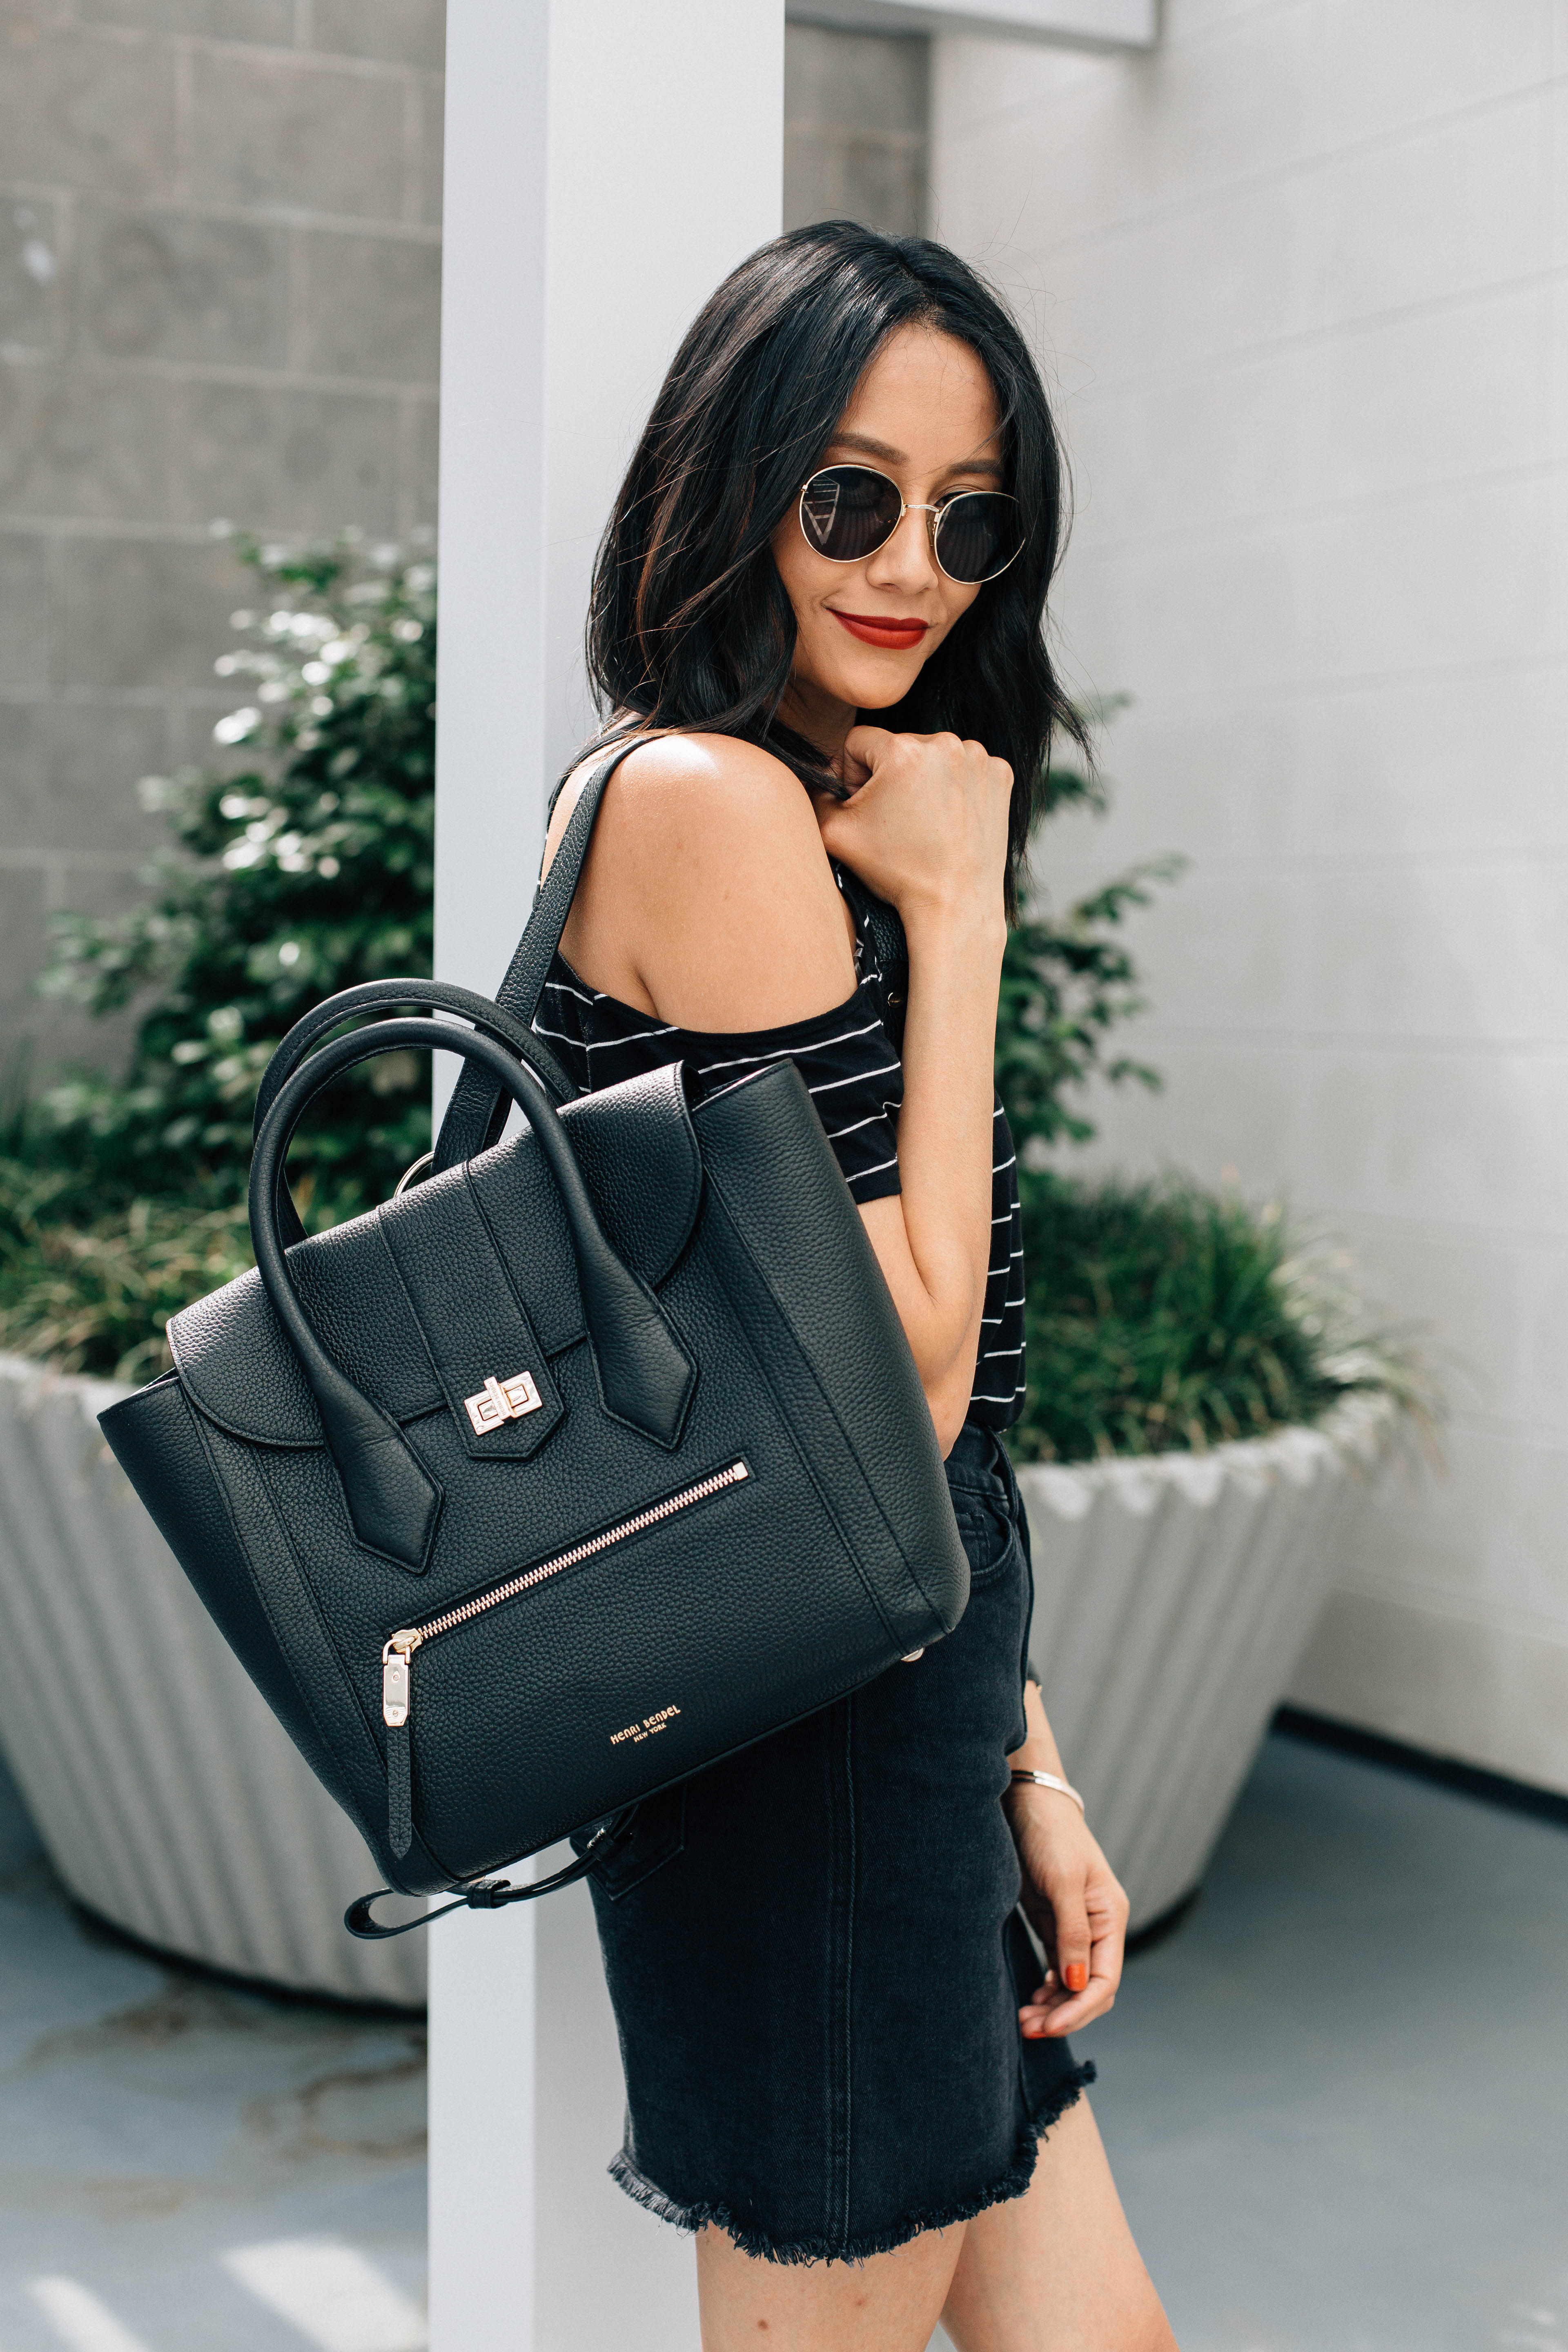 Lifestyle blogger Lilly Beltran of Daily Craving wearing a Henri Bendel bag and red matte lips